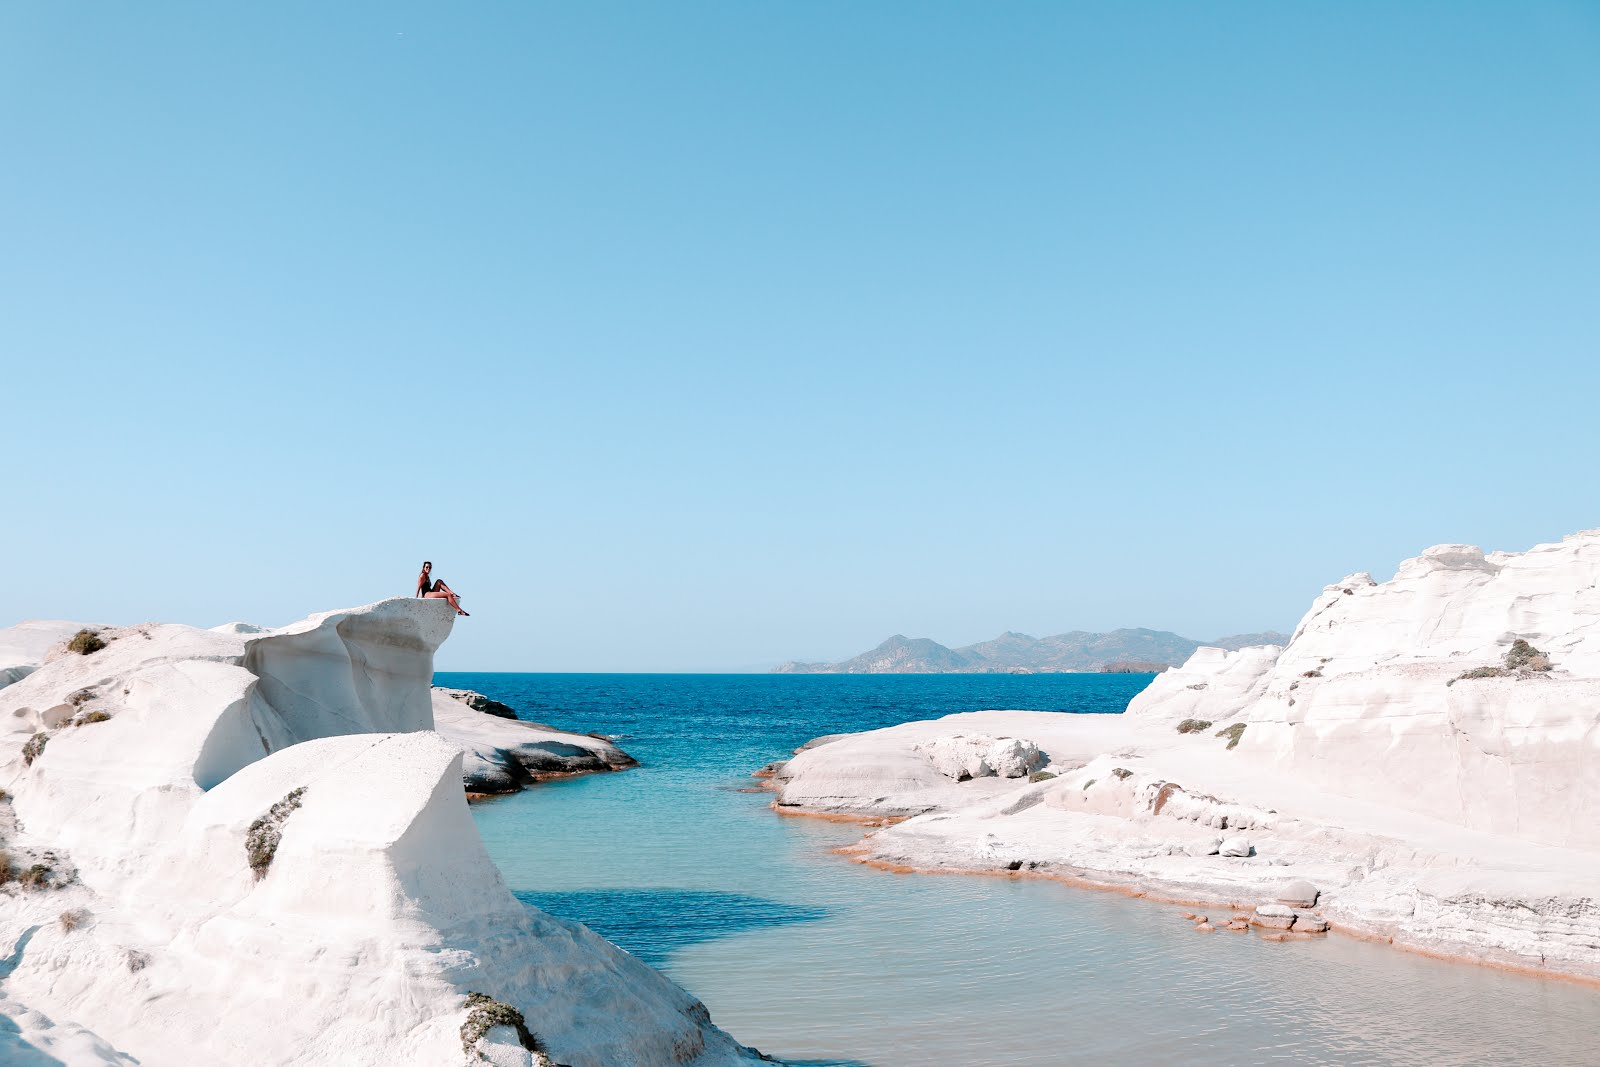 Sarakiniko Beach Cliffs in Milos island, Greece